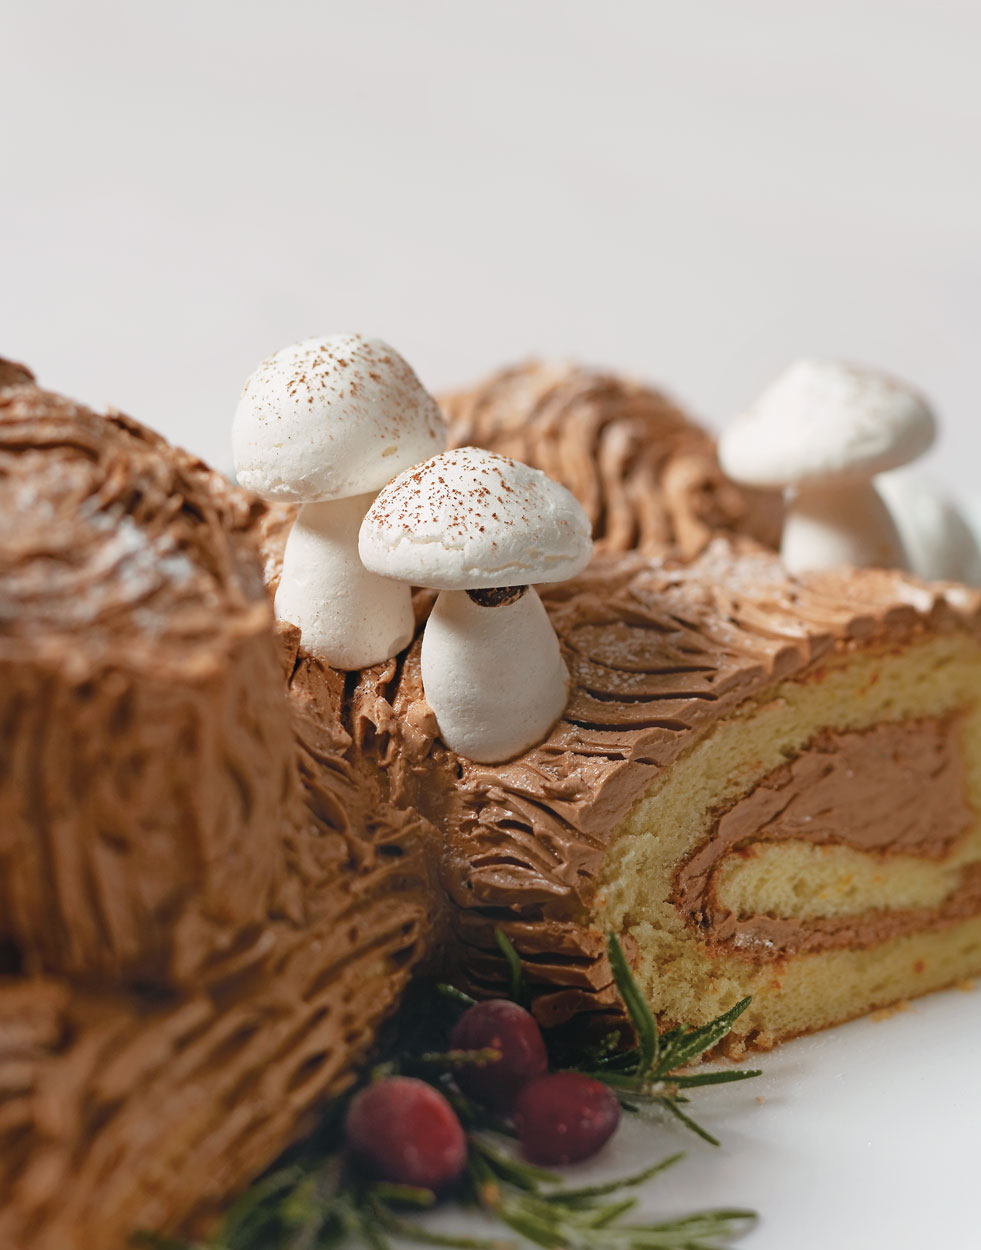 Meringue Mushrooms for bûche de noël